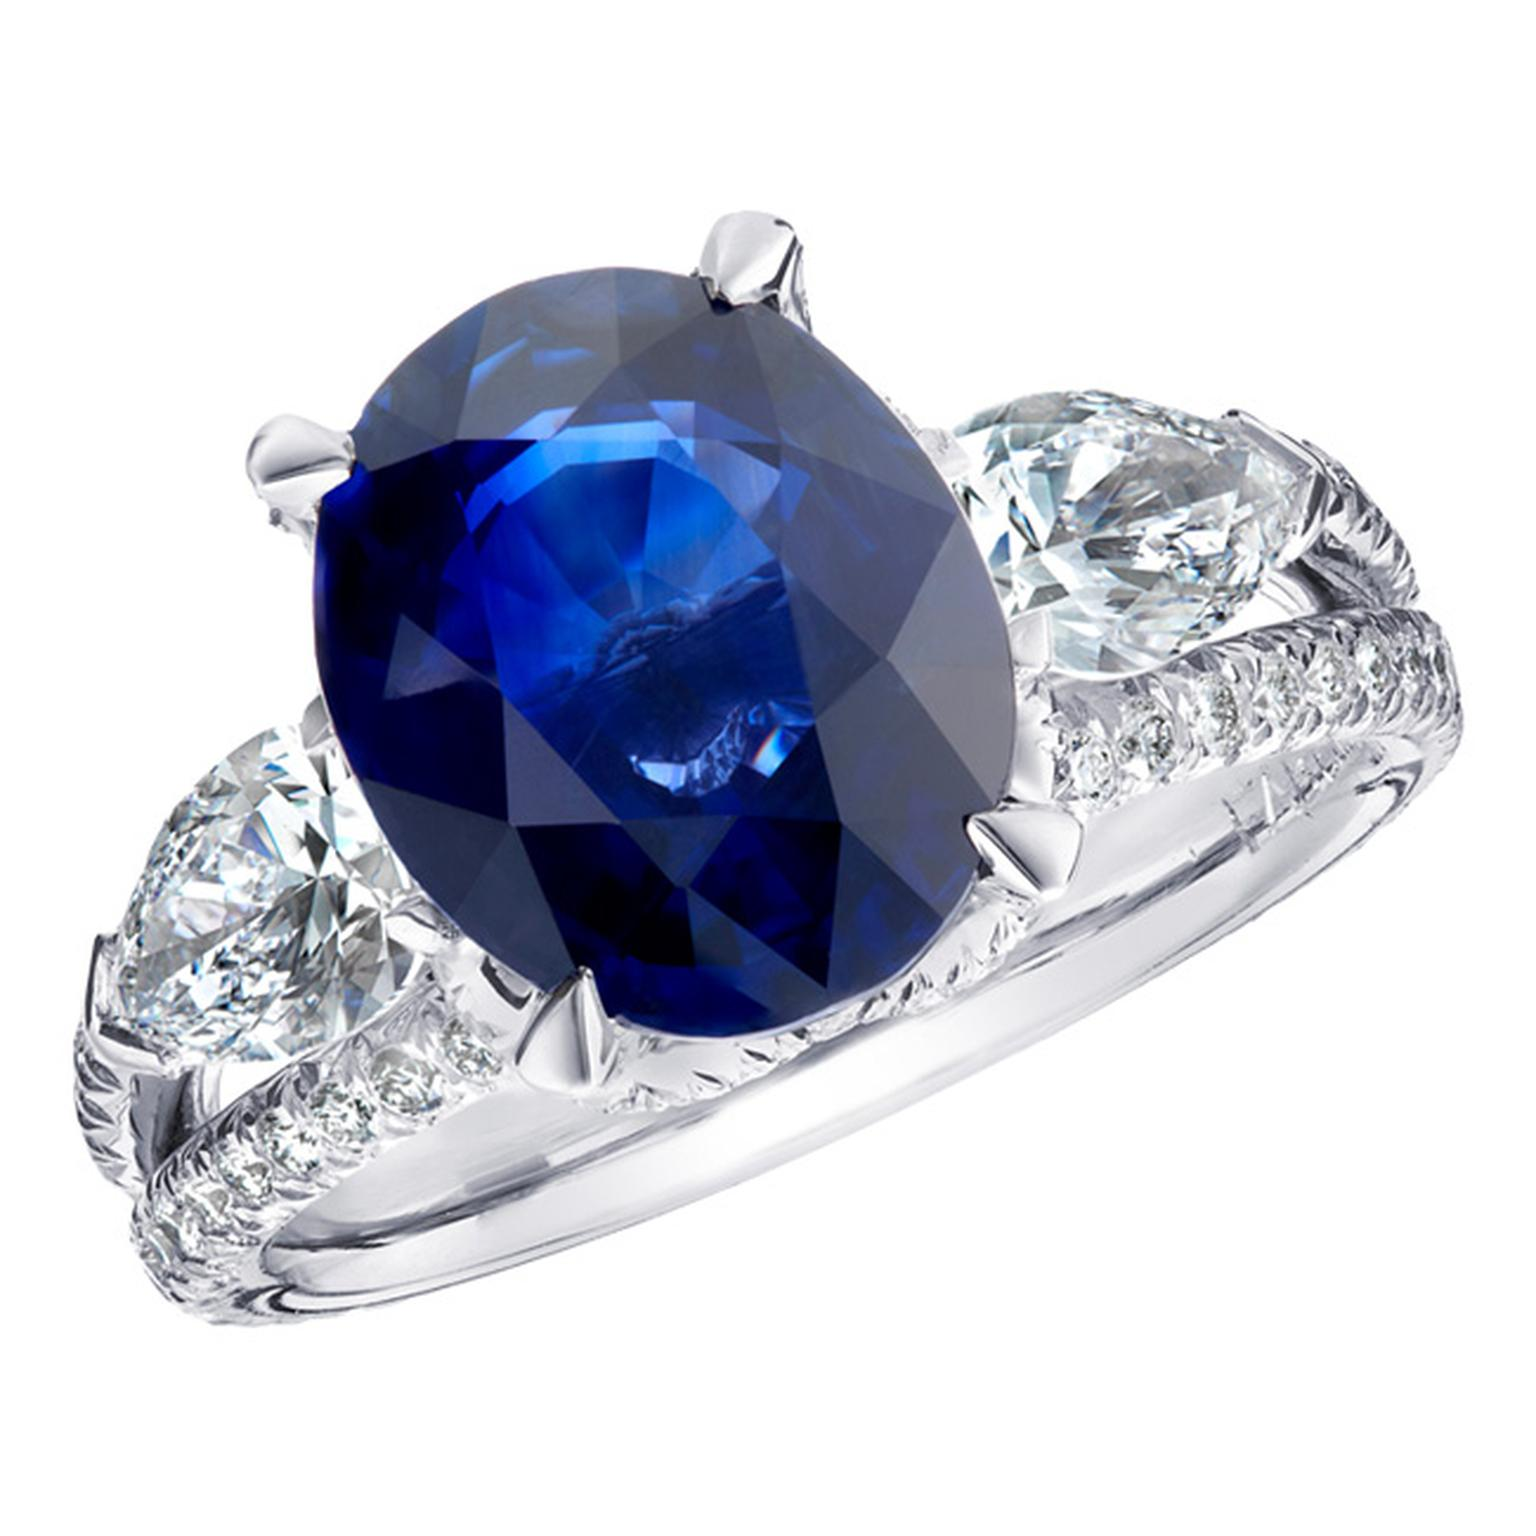 Faberge Devotion Blue Sapphire engagement ring_20140212_Main